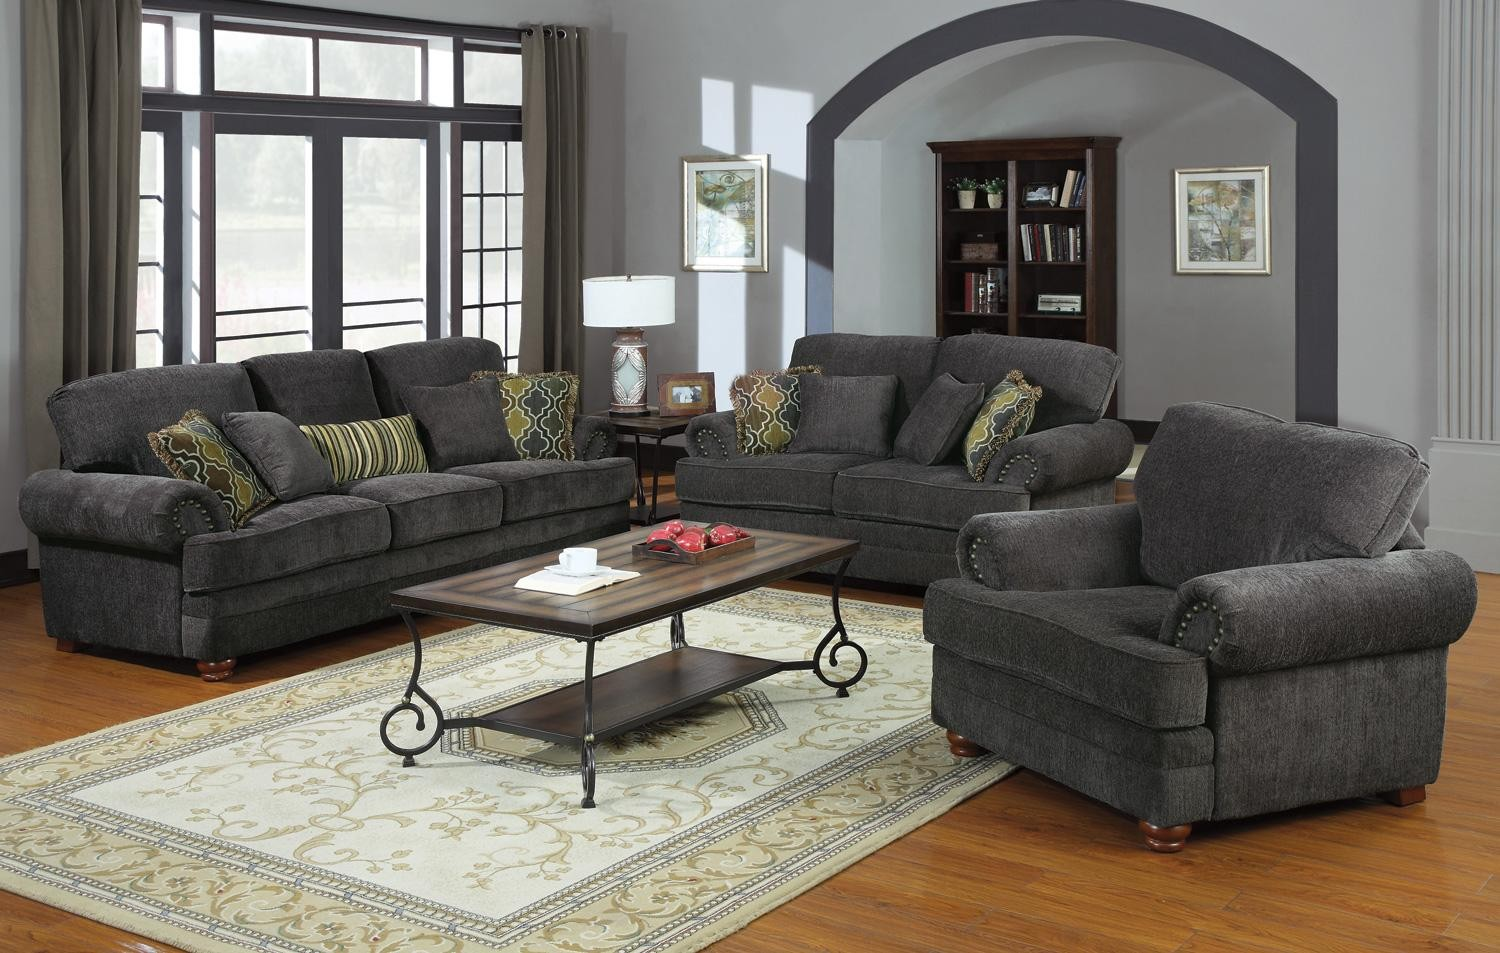 Grey Living Room Chairs Colton Grey Living Room Set From Coaster 504401